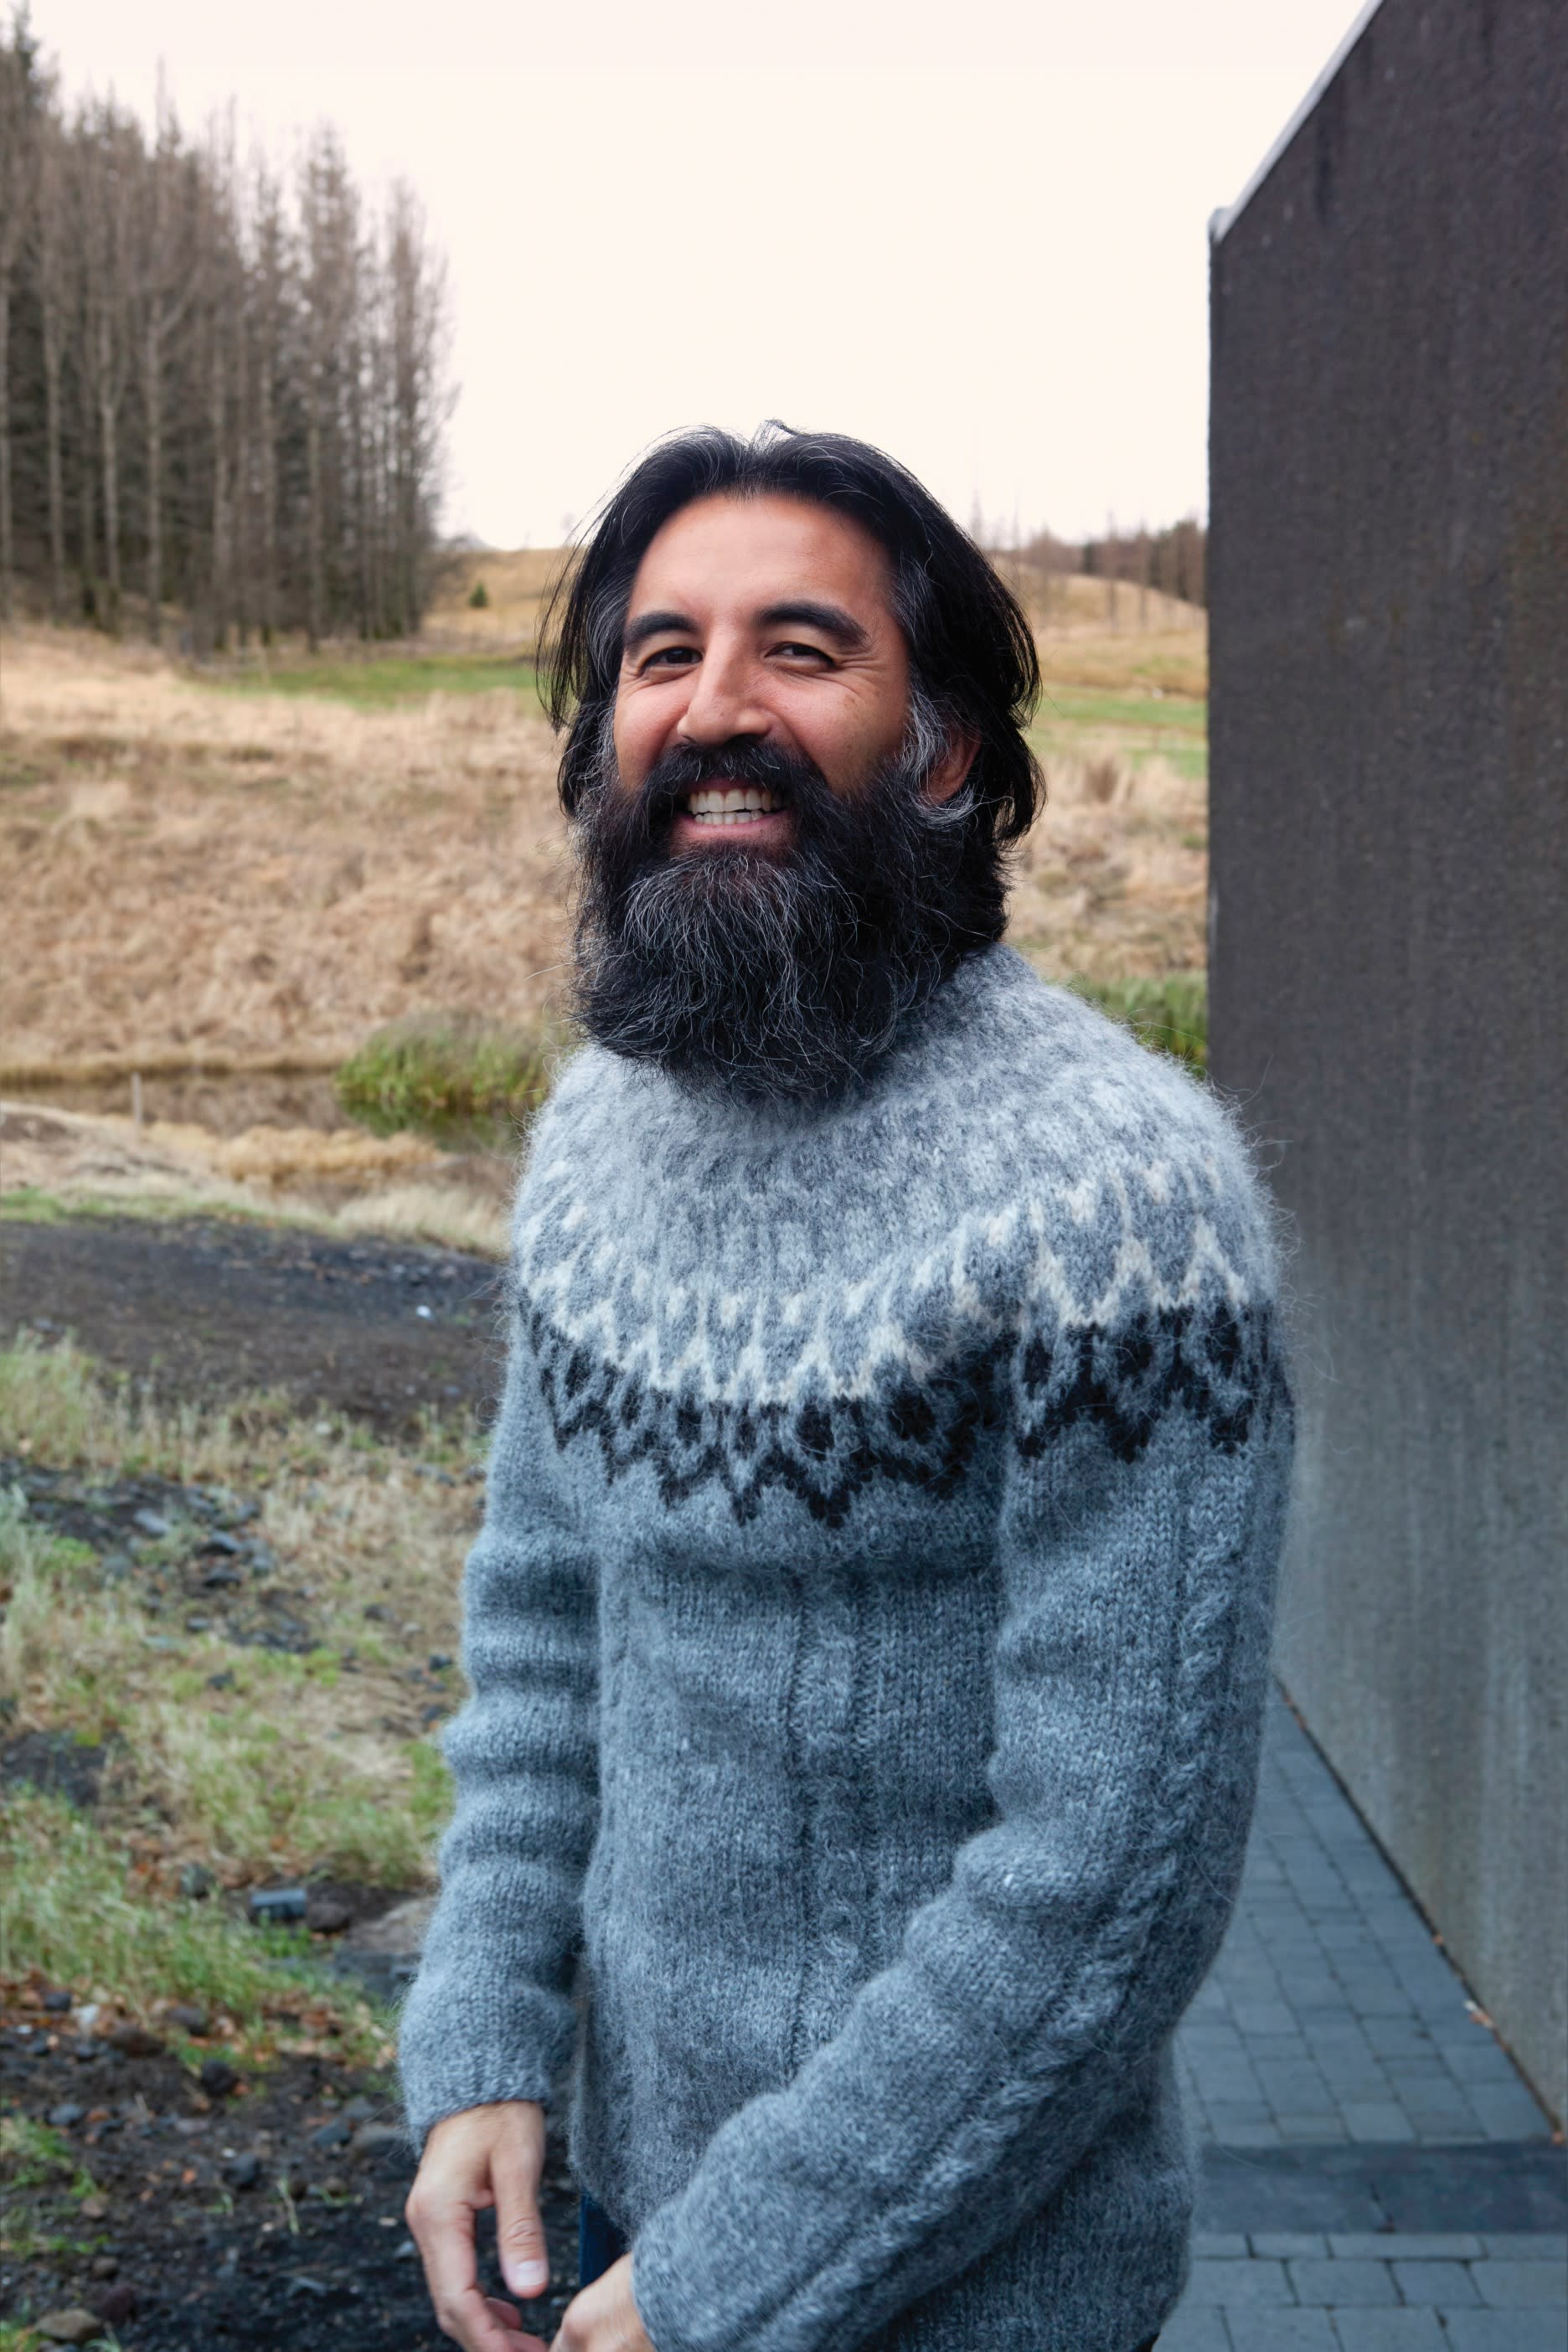 a man with a large beard, standing in the Icelandic nature, smiling directly into the camera while wearing a grey knitted Icelandic sweater